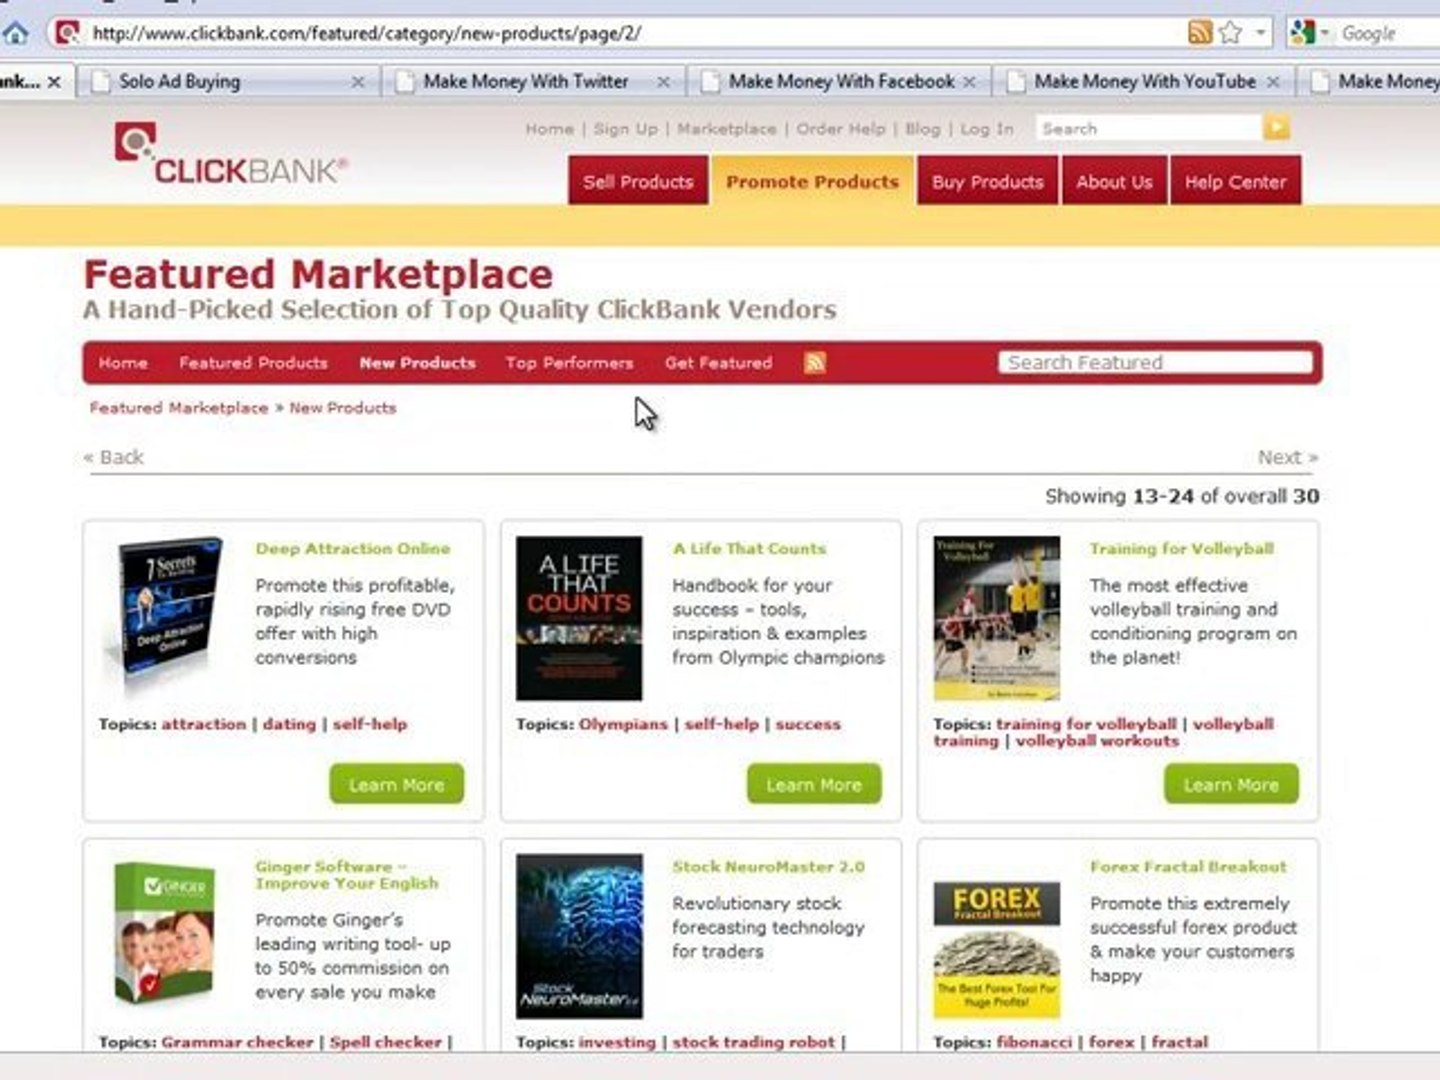 Getting Clickbank Products